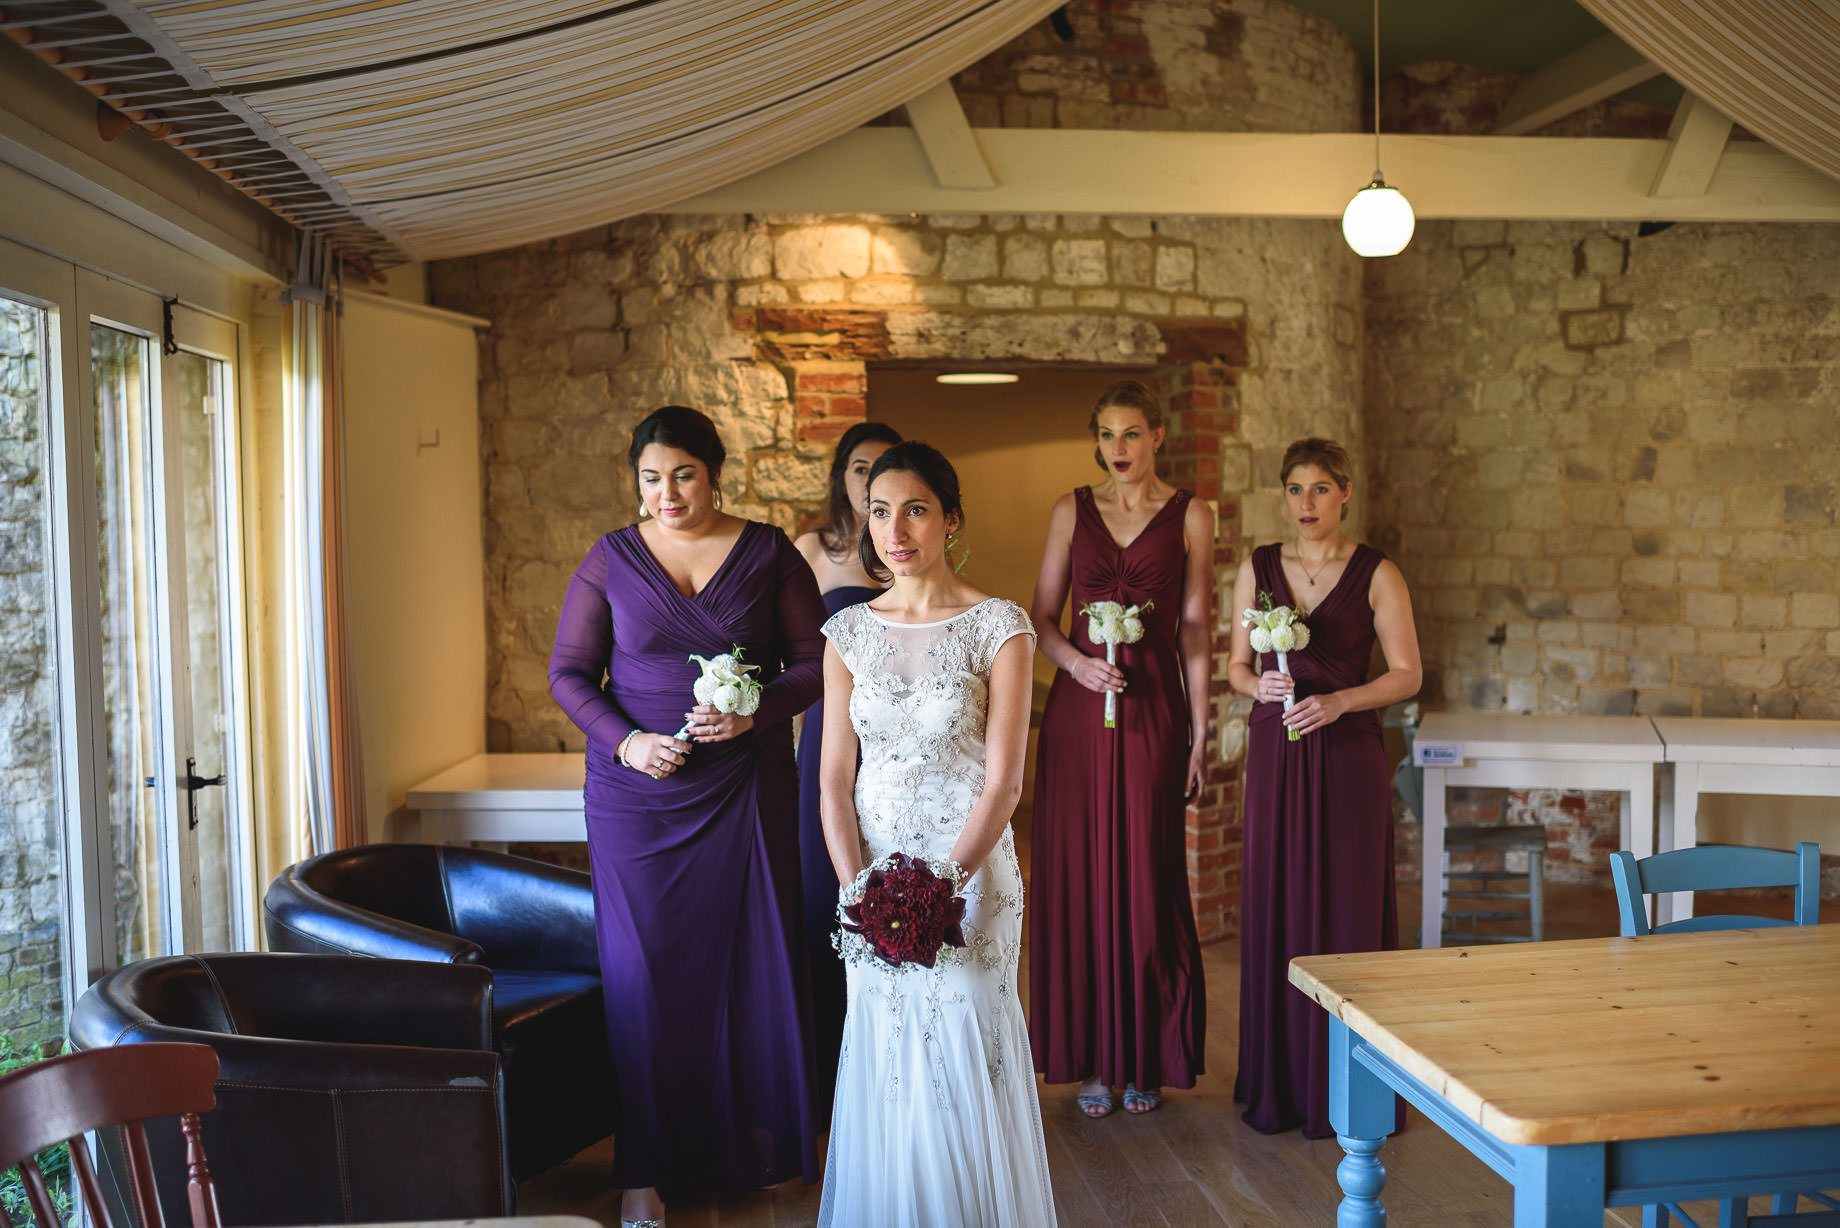 bury-court-barn-wedding-photography-guy-collier-photography-nadia-tom-48-of-184